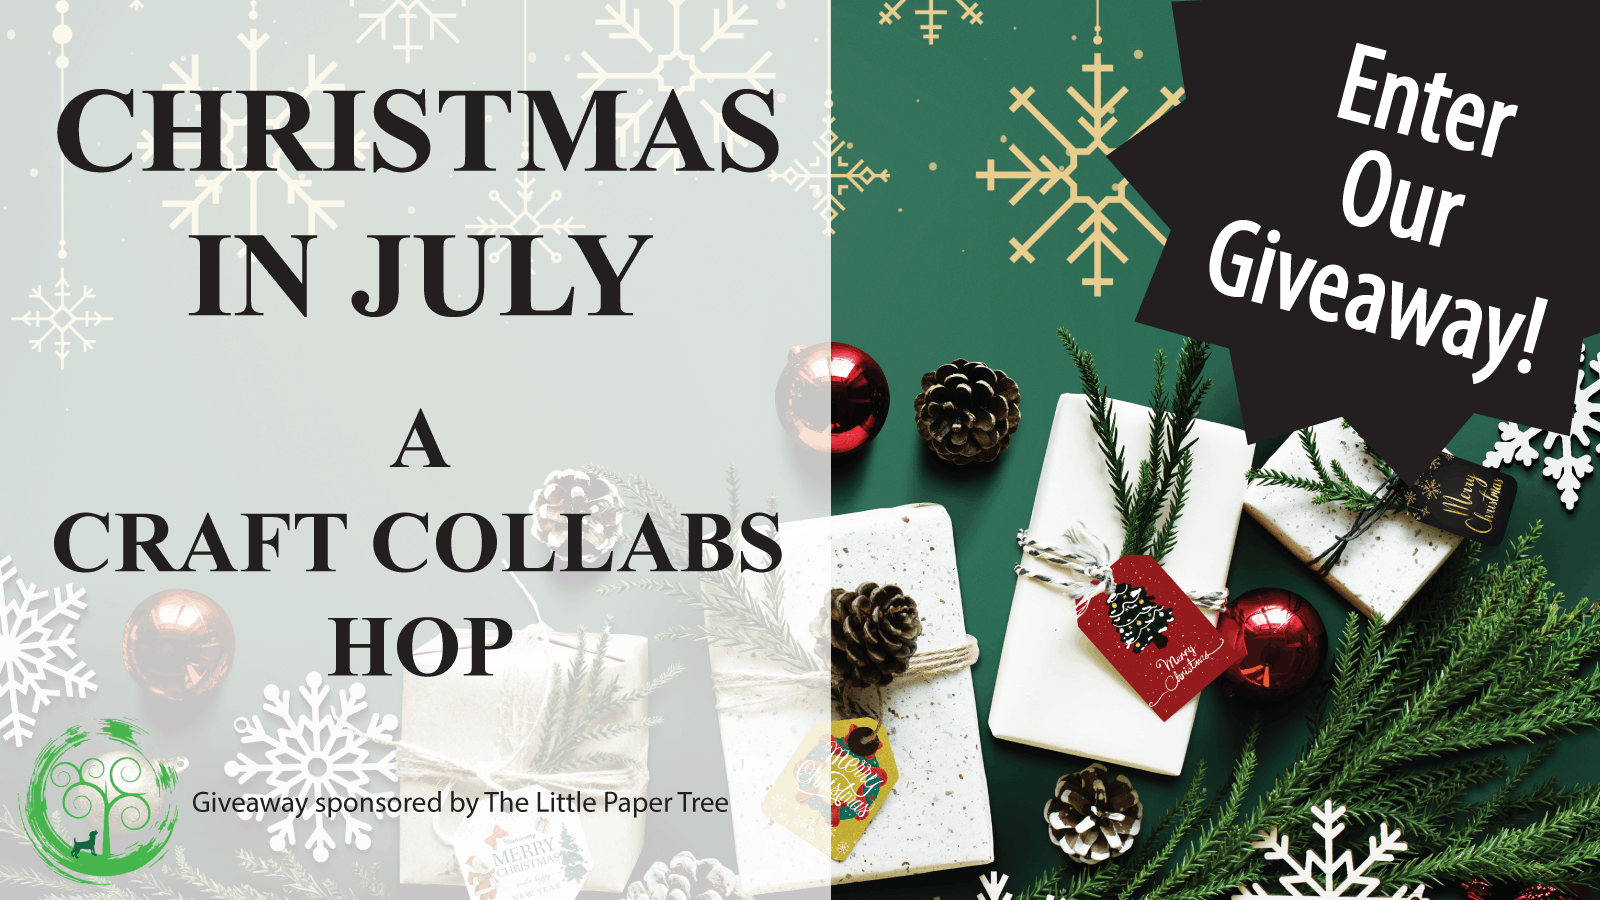 Join the Connie Can Crop monthly blog hop for tons of stocking related holiday project ideas! We have prizes too, so hop along today!